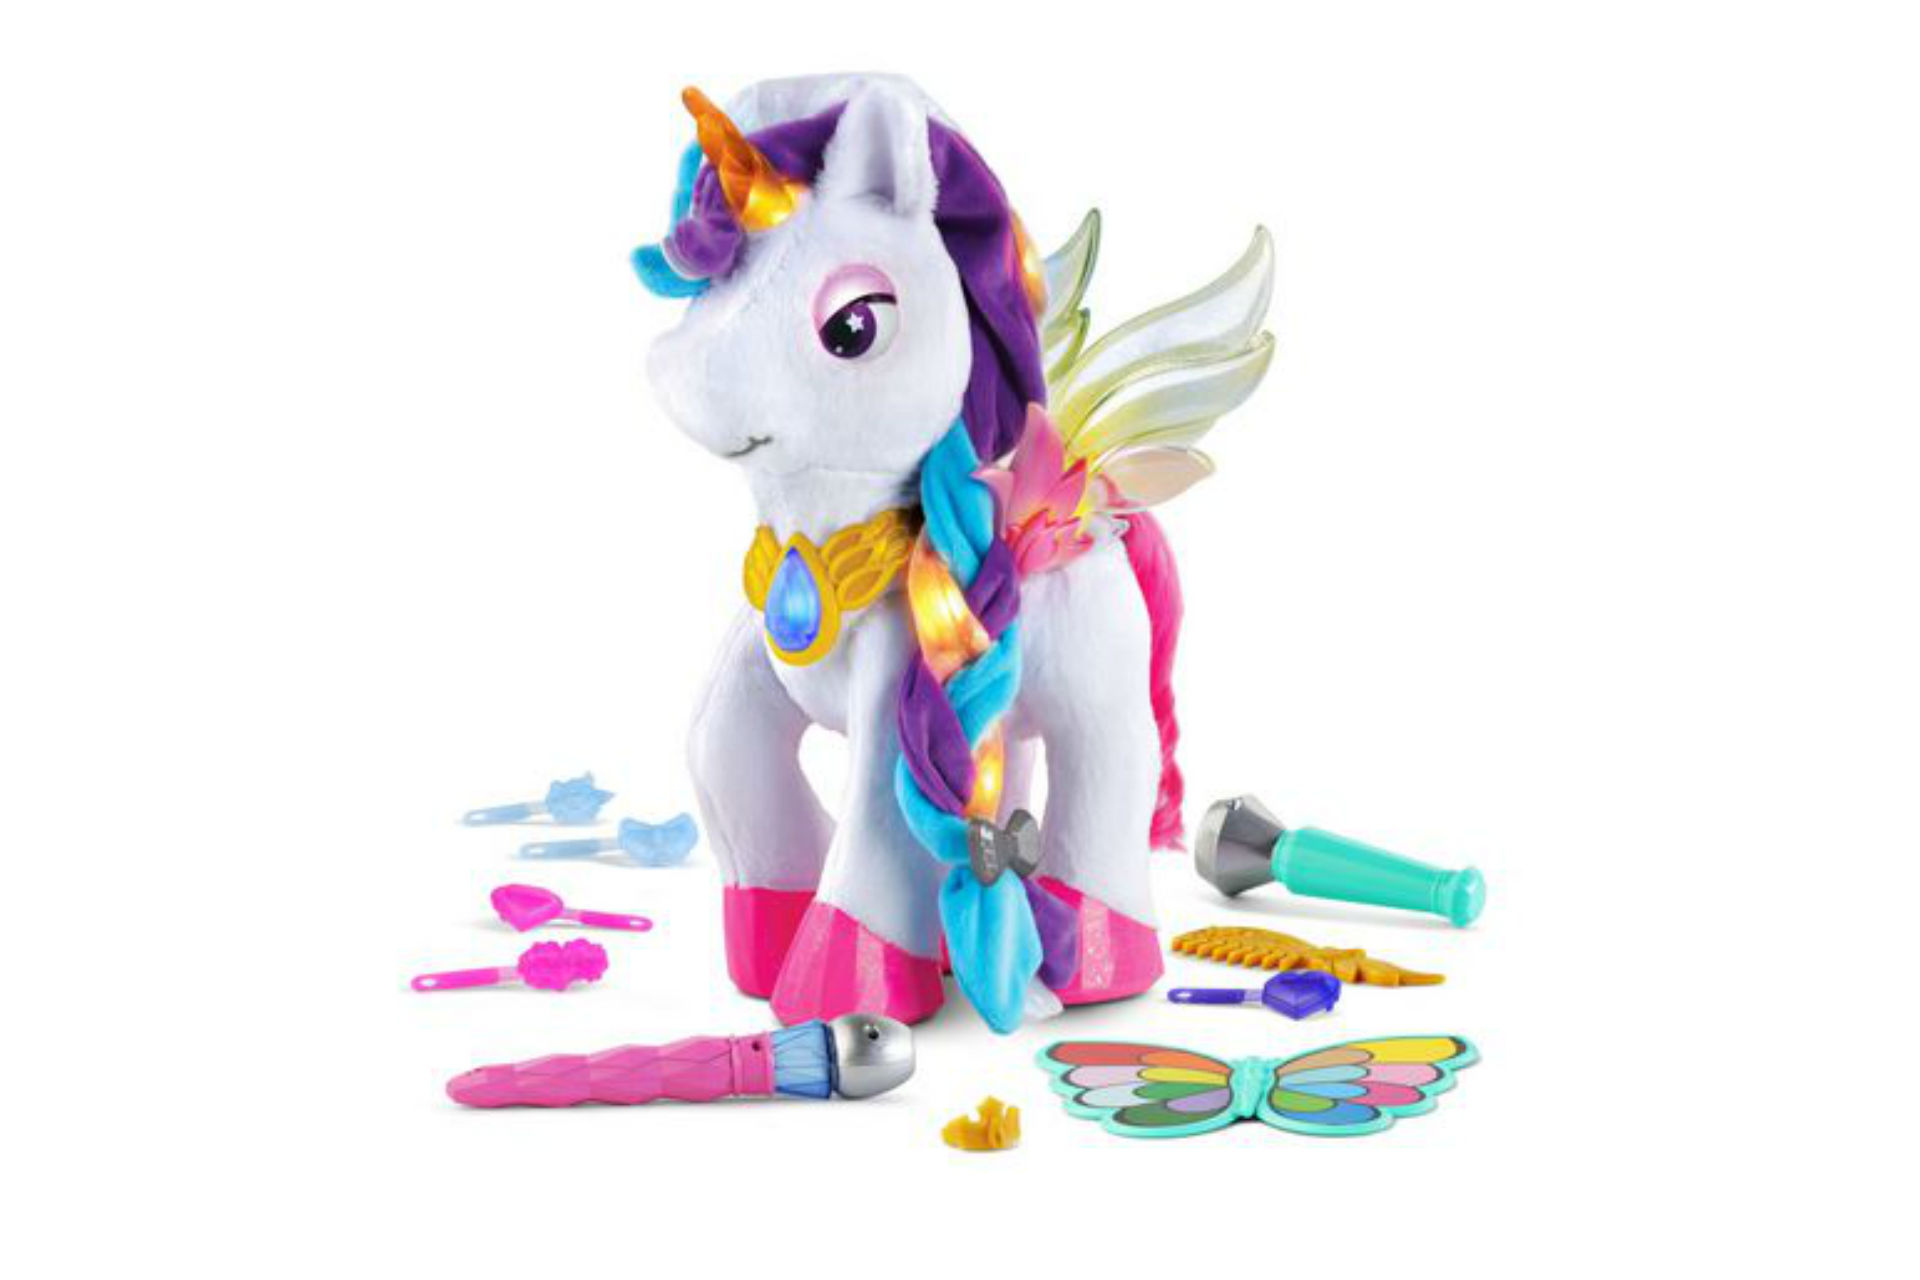 unicorn with rainbow hair and accessories